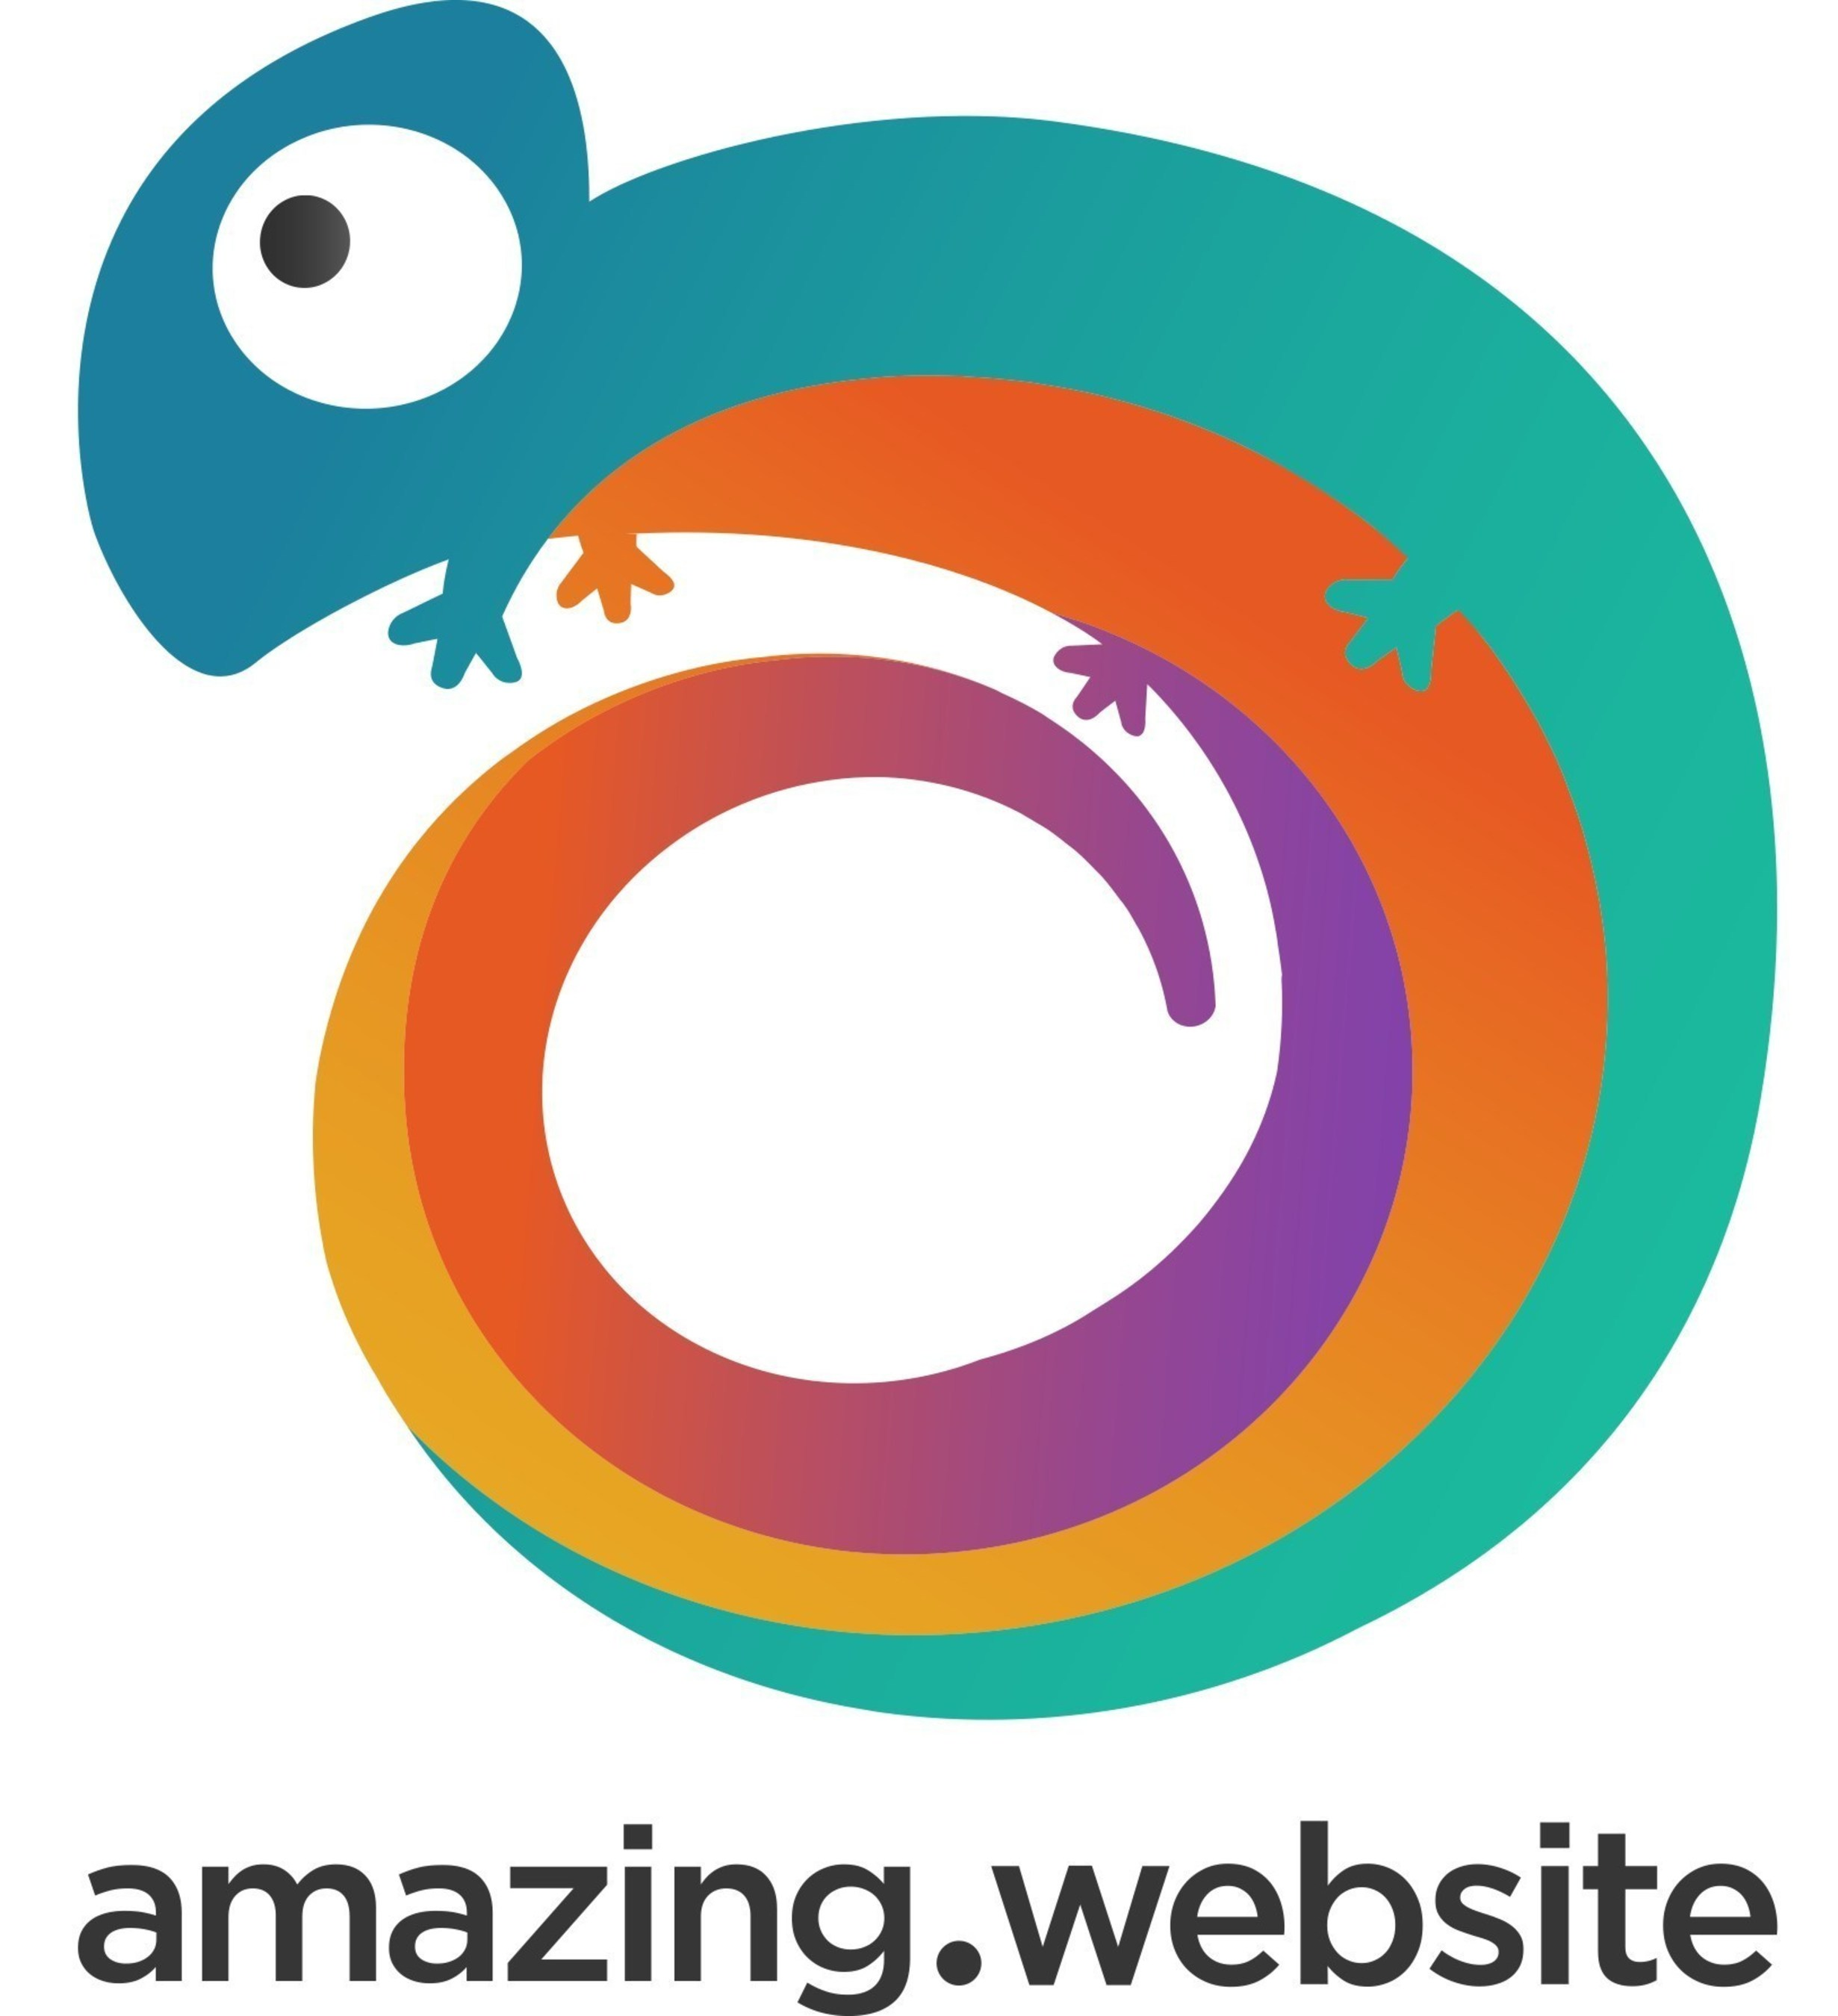 eUKhost Launches 'Amazing.Website': The Easy Hi-Spec Site Builder for Complete Beginners